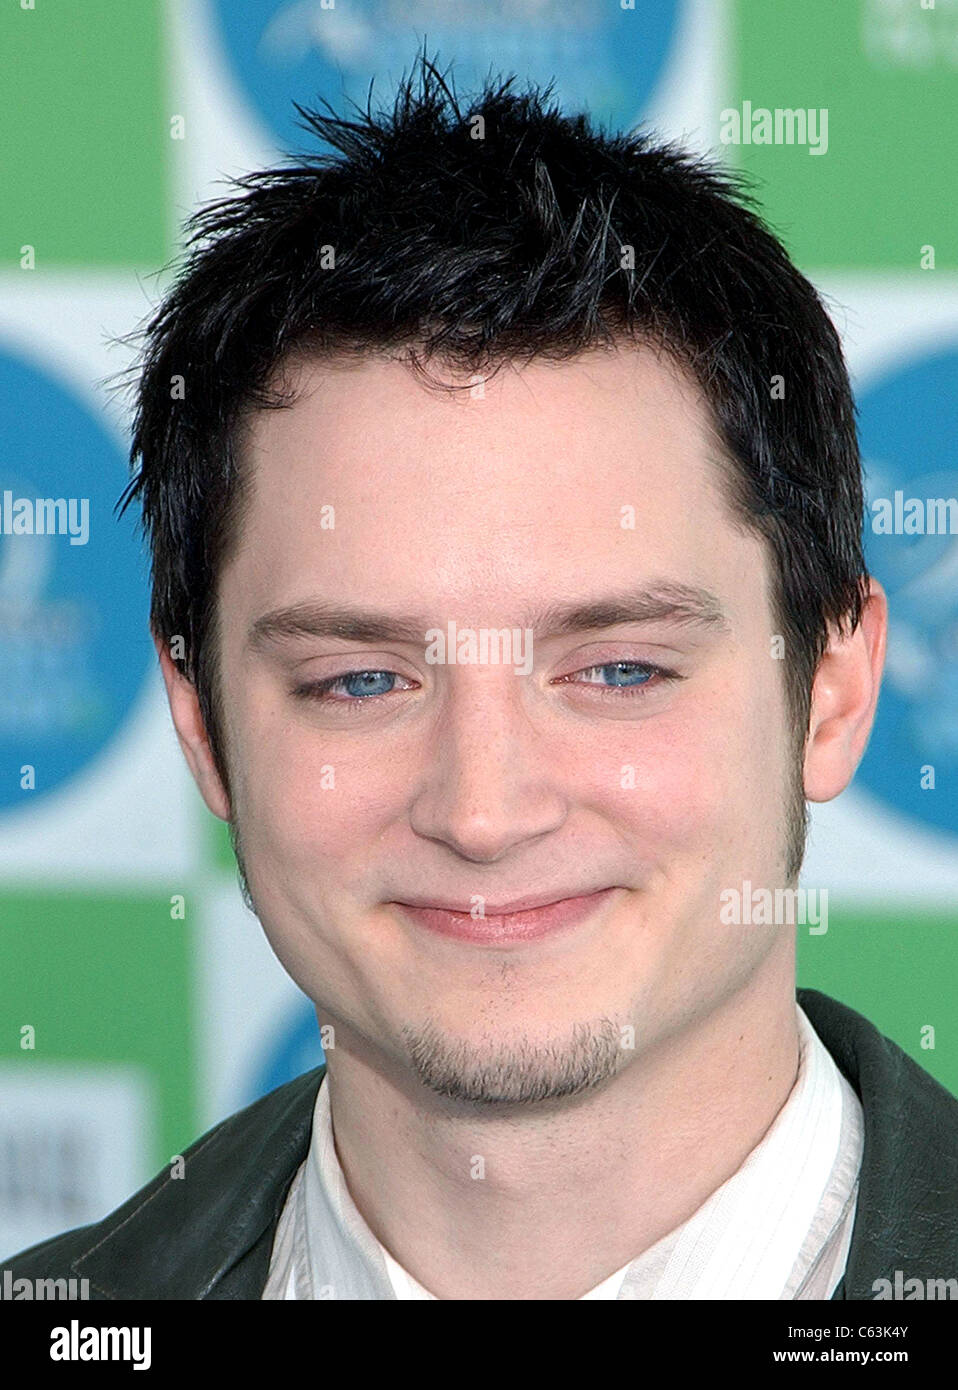 Elijah Wood at arrivals for 20th IFP Independent Spirit Awards, Los Angeles, CA, Saturday, February 26, 2005. Photo - Stock Image